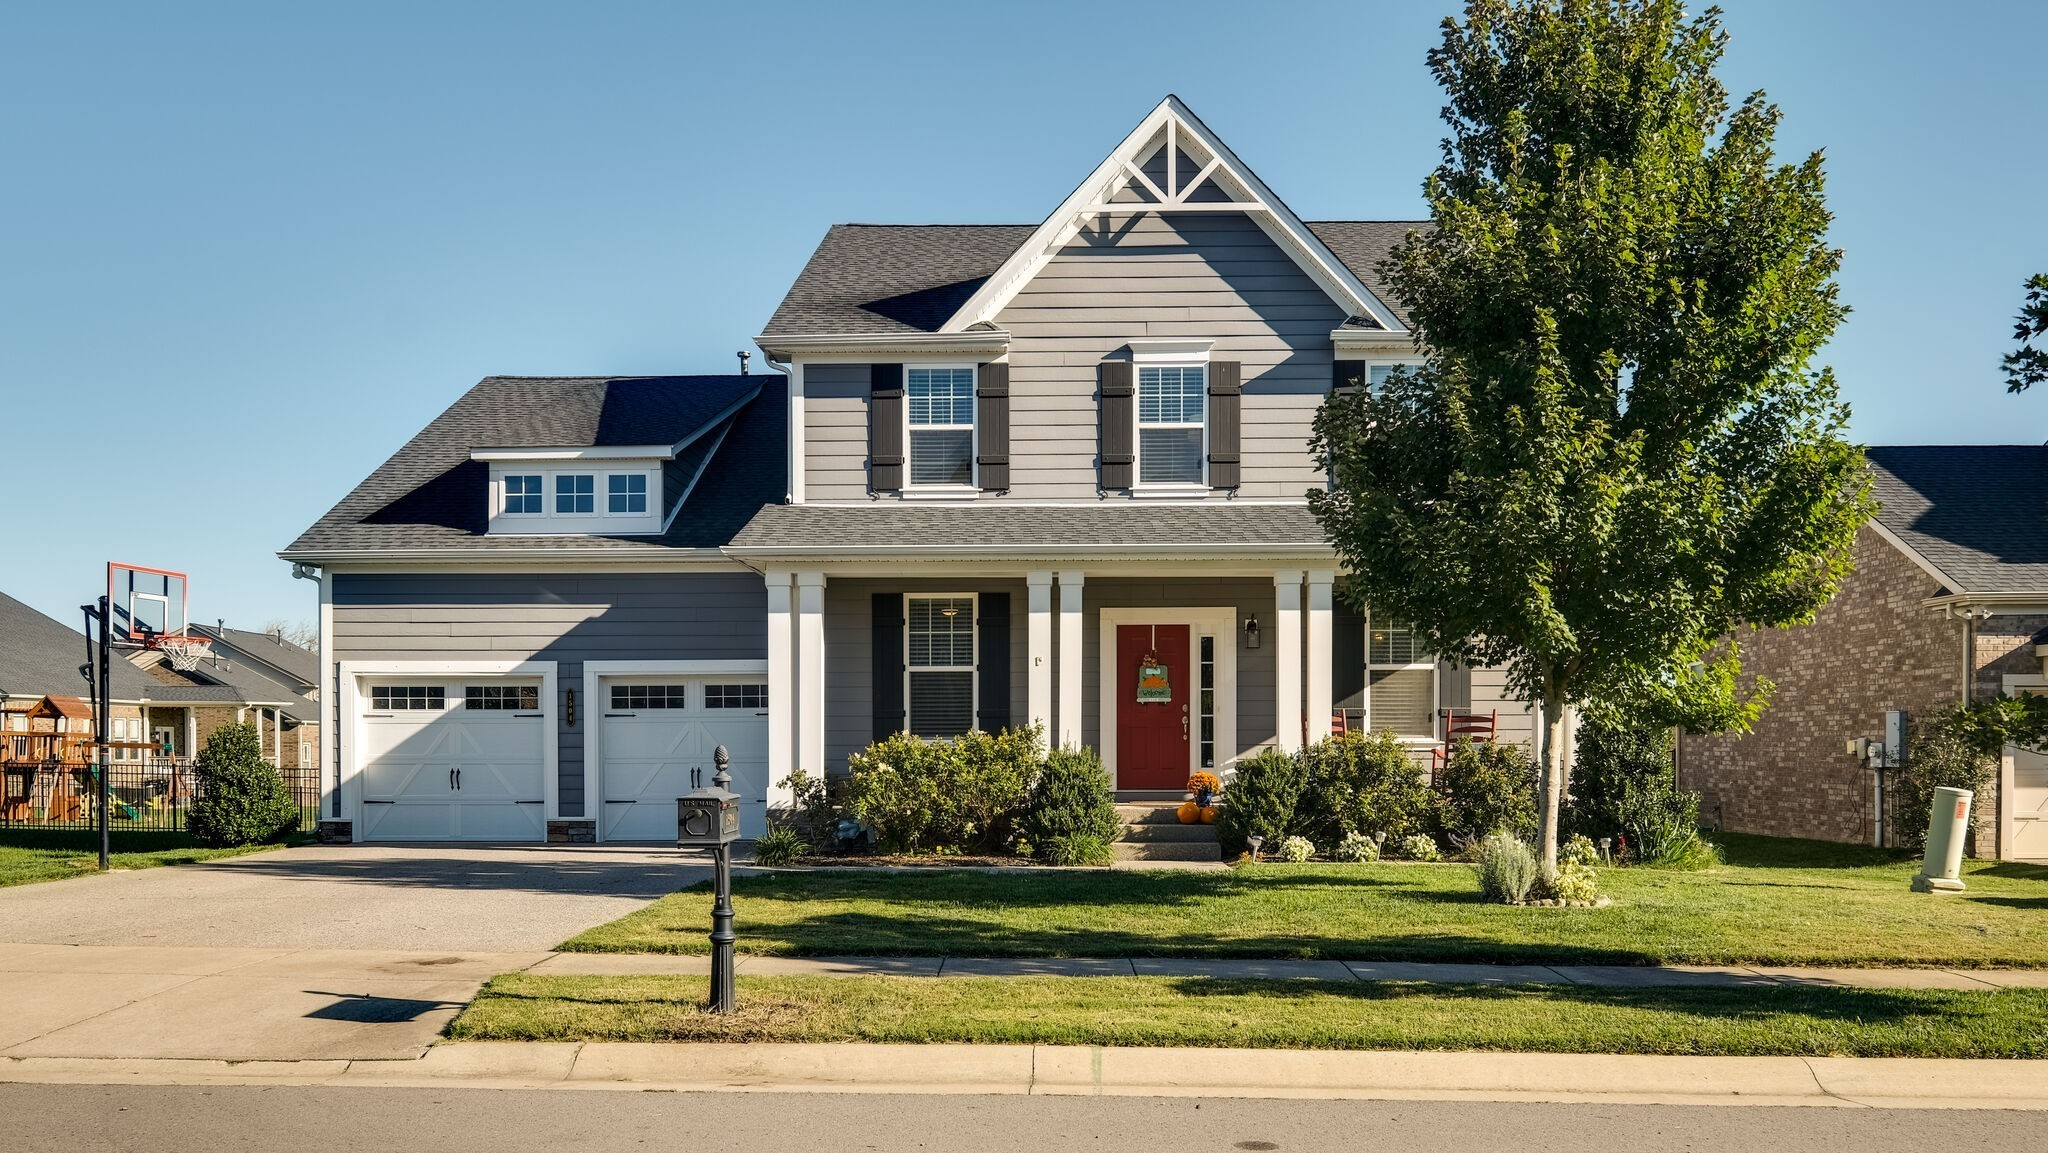 Made for a family! 5 Bd/ 4 1/2 BA. Open Den w/ a wall of Window& Fireplace. Hardwoods in Living Areas. Kitchen w/ Double Ovens, Cooktop, & Granite. Custom Pantry &Butler's pantry w/Icemaker. Dinning Room and Office. Master Suite on Main Floor. Huge bonus with Built-Ins. Deck and Patio Perfect for Entertaining. All Offers Submitted by 10/26 at 5.